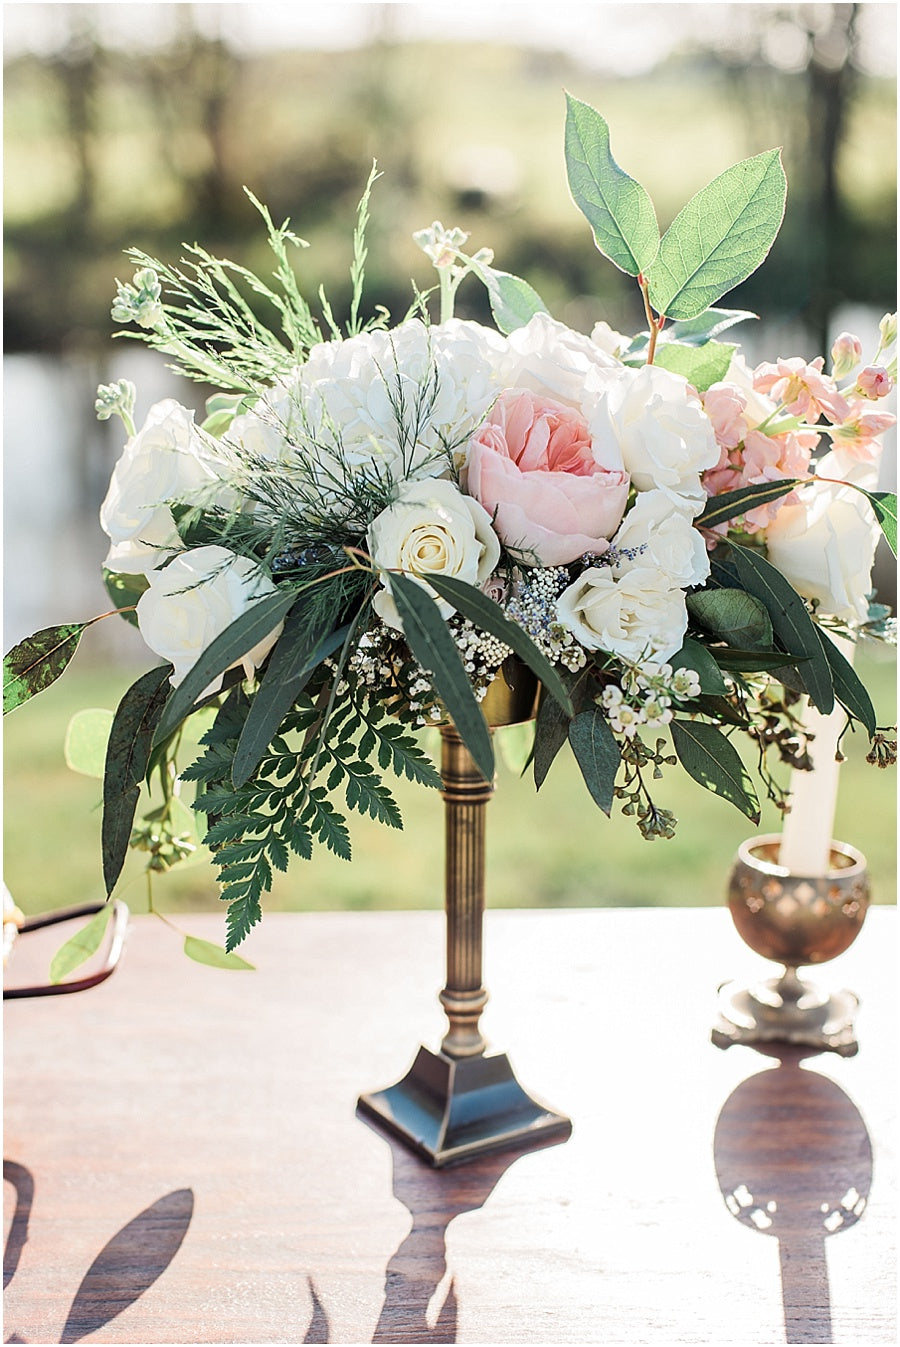 leah adkins photography // little miss lovely floral design // brass candlestick centerpiece with florals